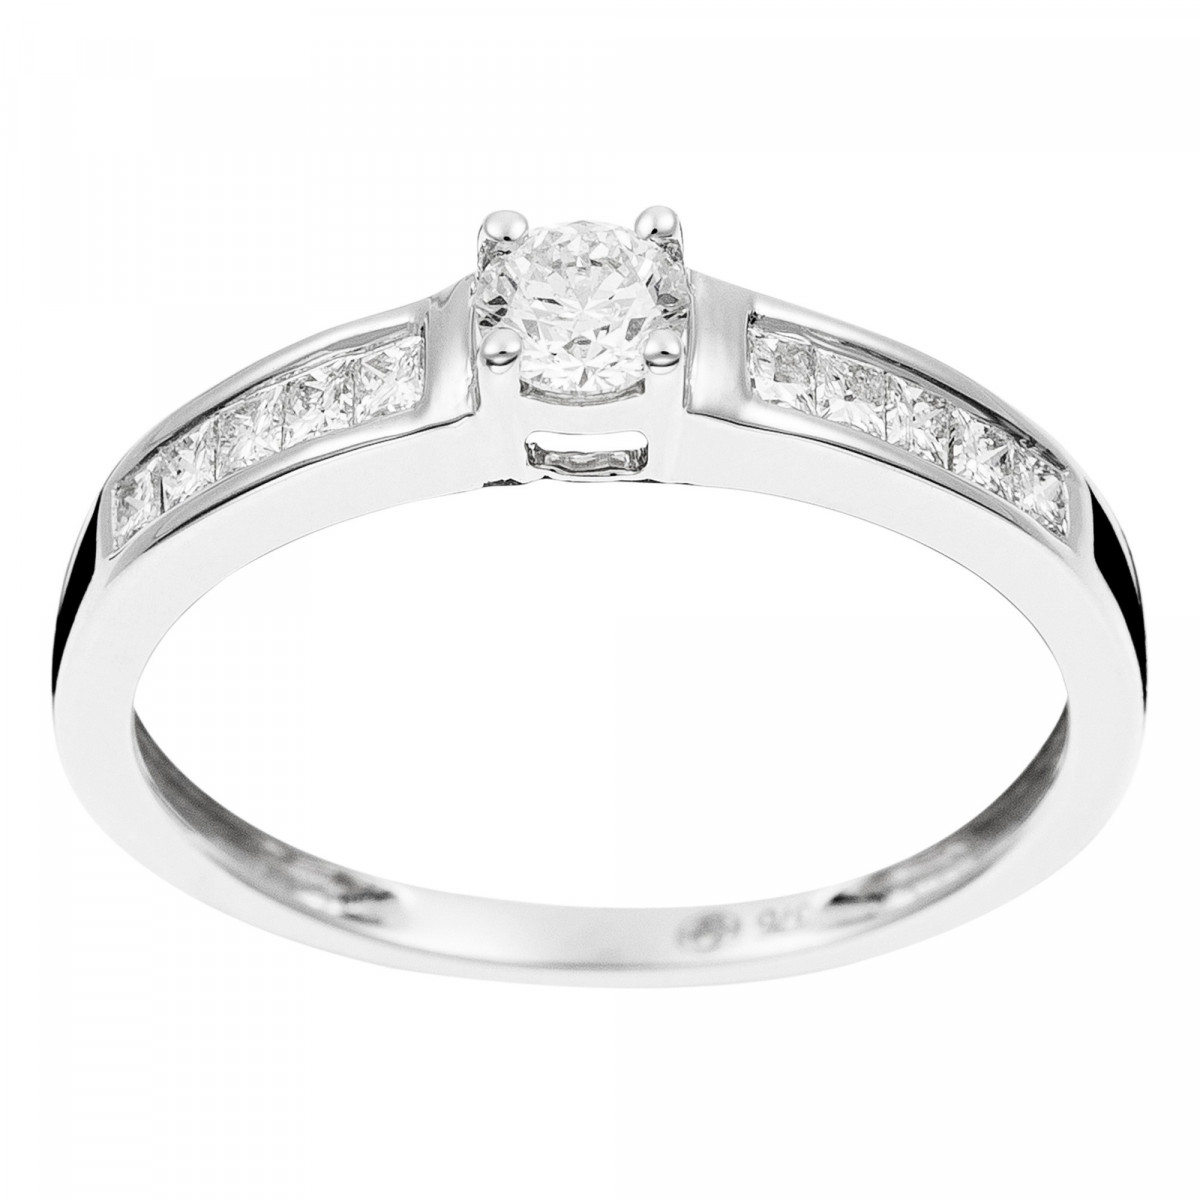 "Solitaire Or Blanc et Diamants 0,5 carat ""SOLITAIRE TOUR PRINCESSE"""